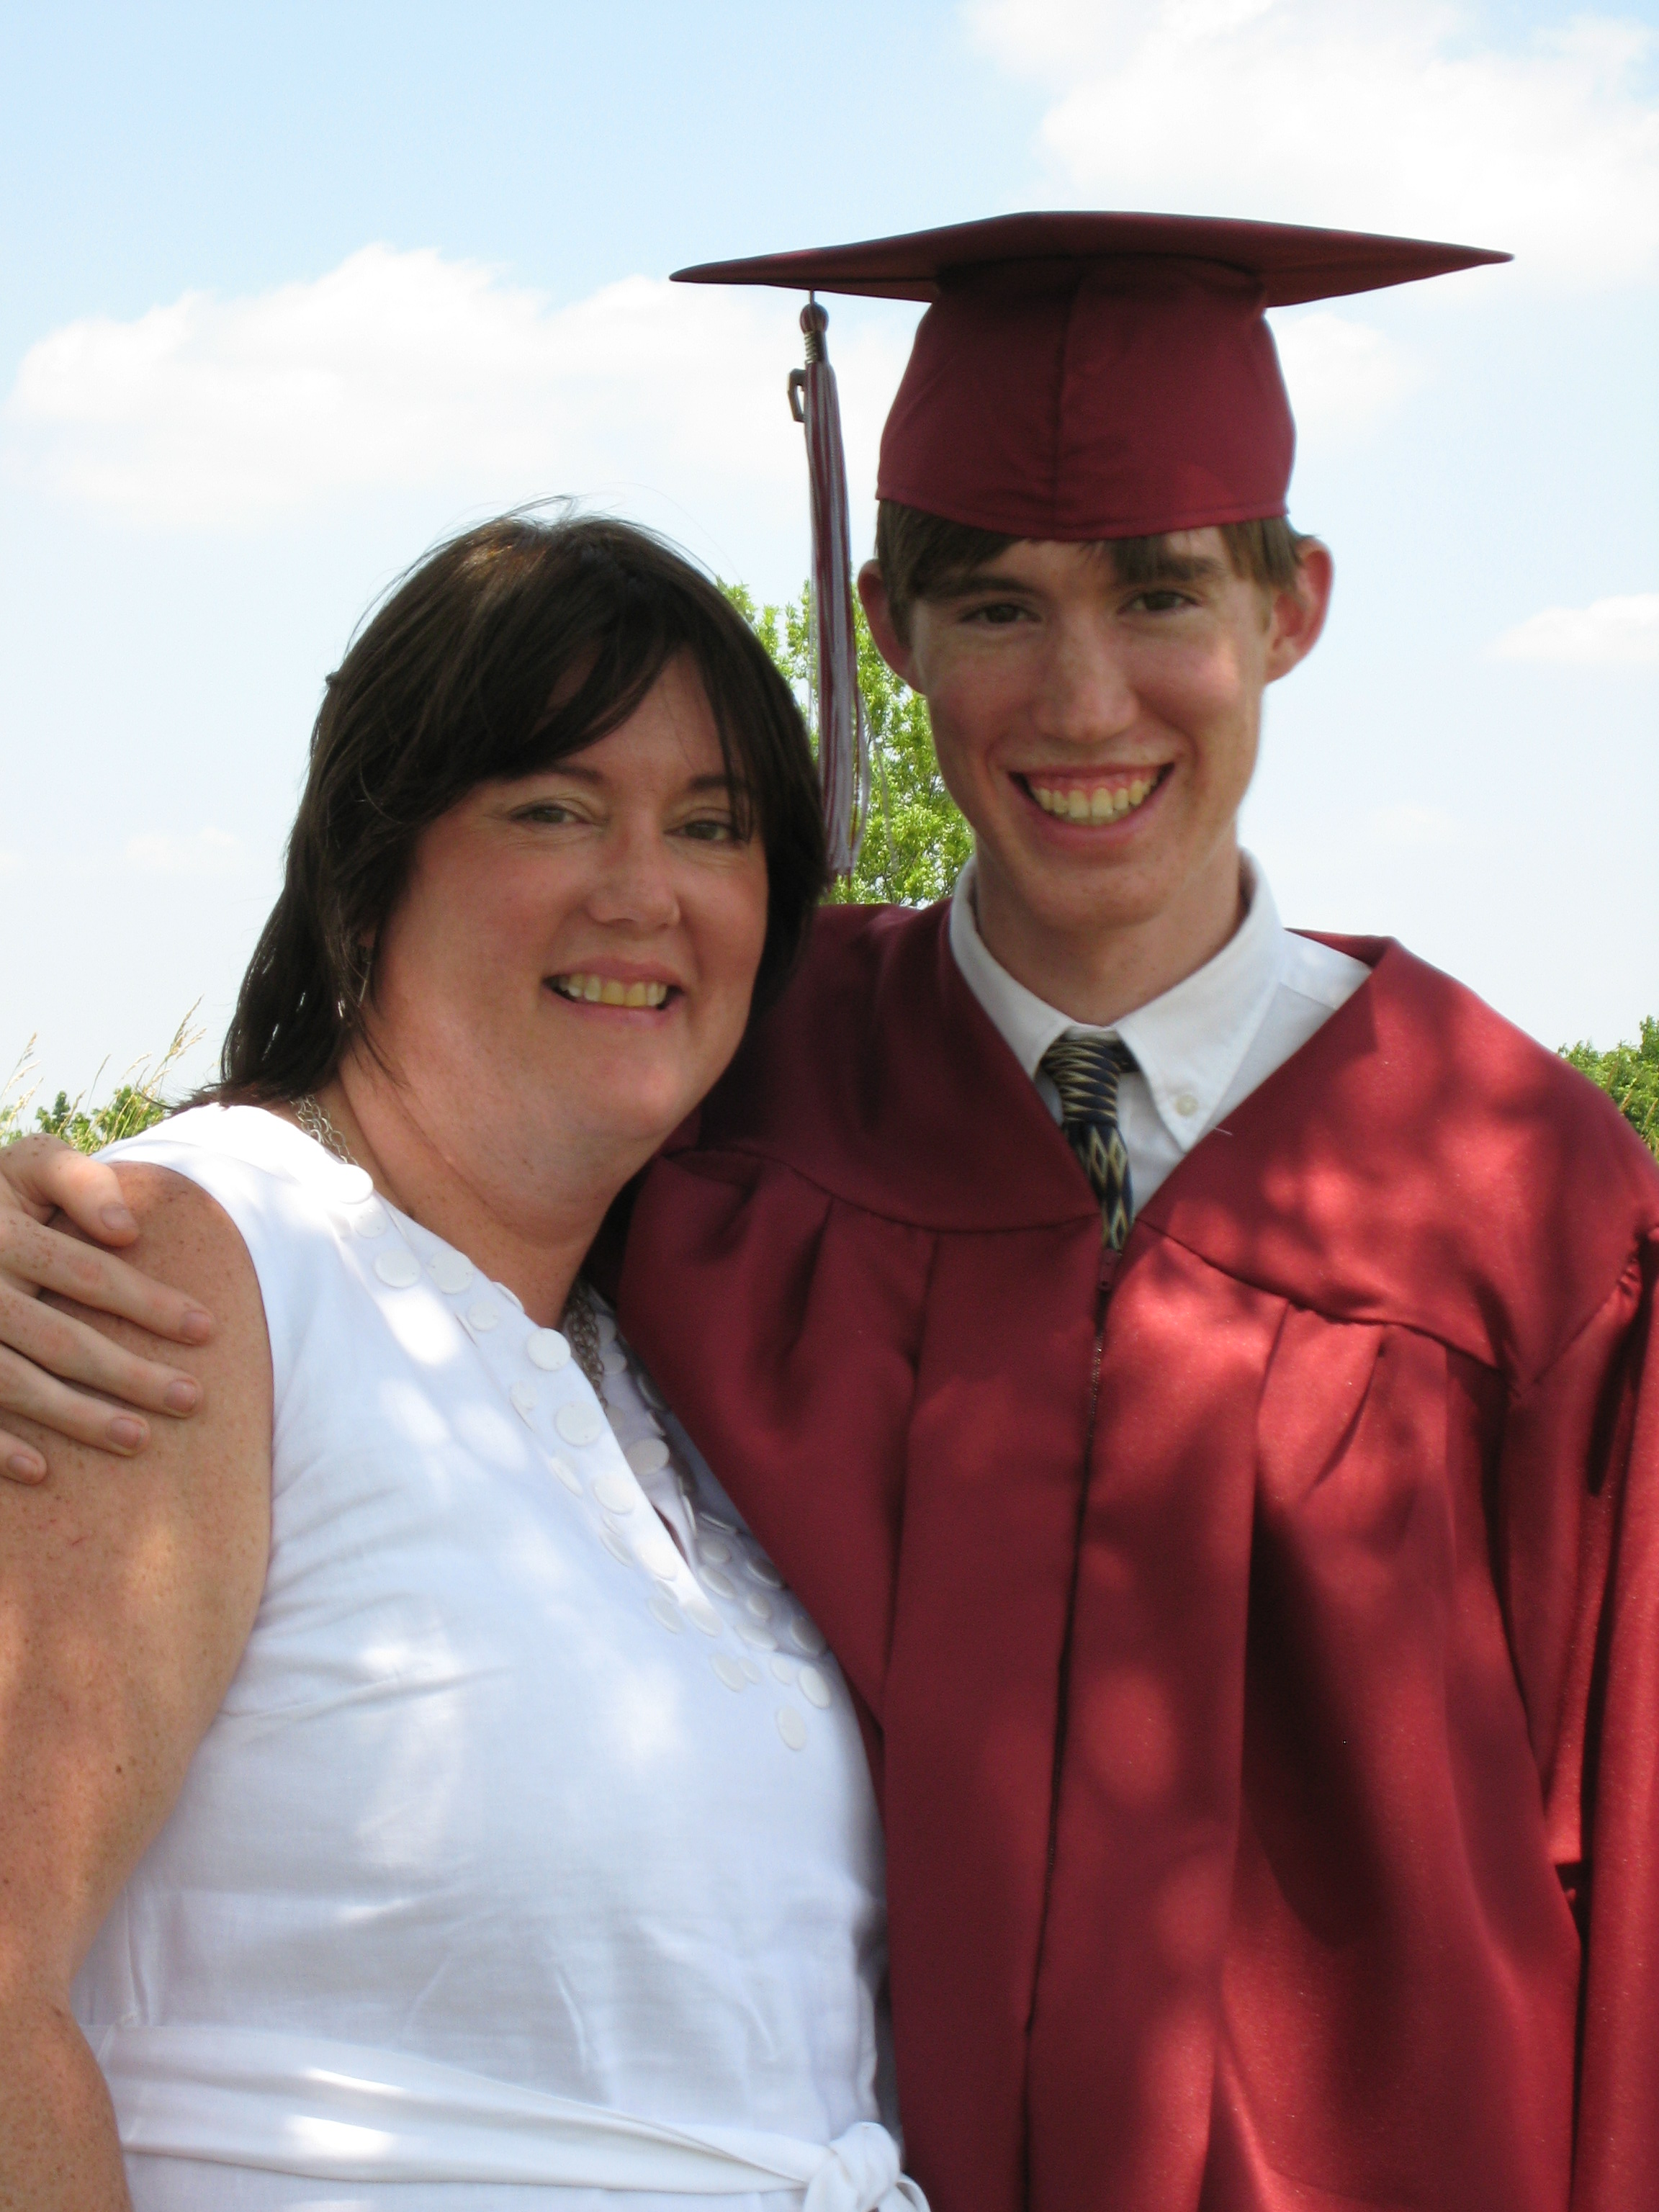 Mom and Me at my High School Graduation